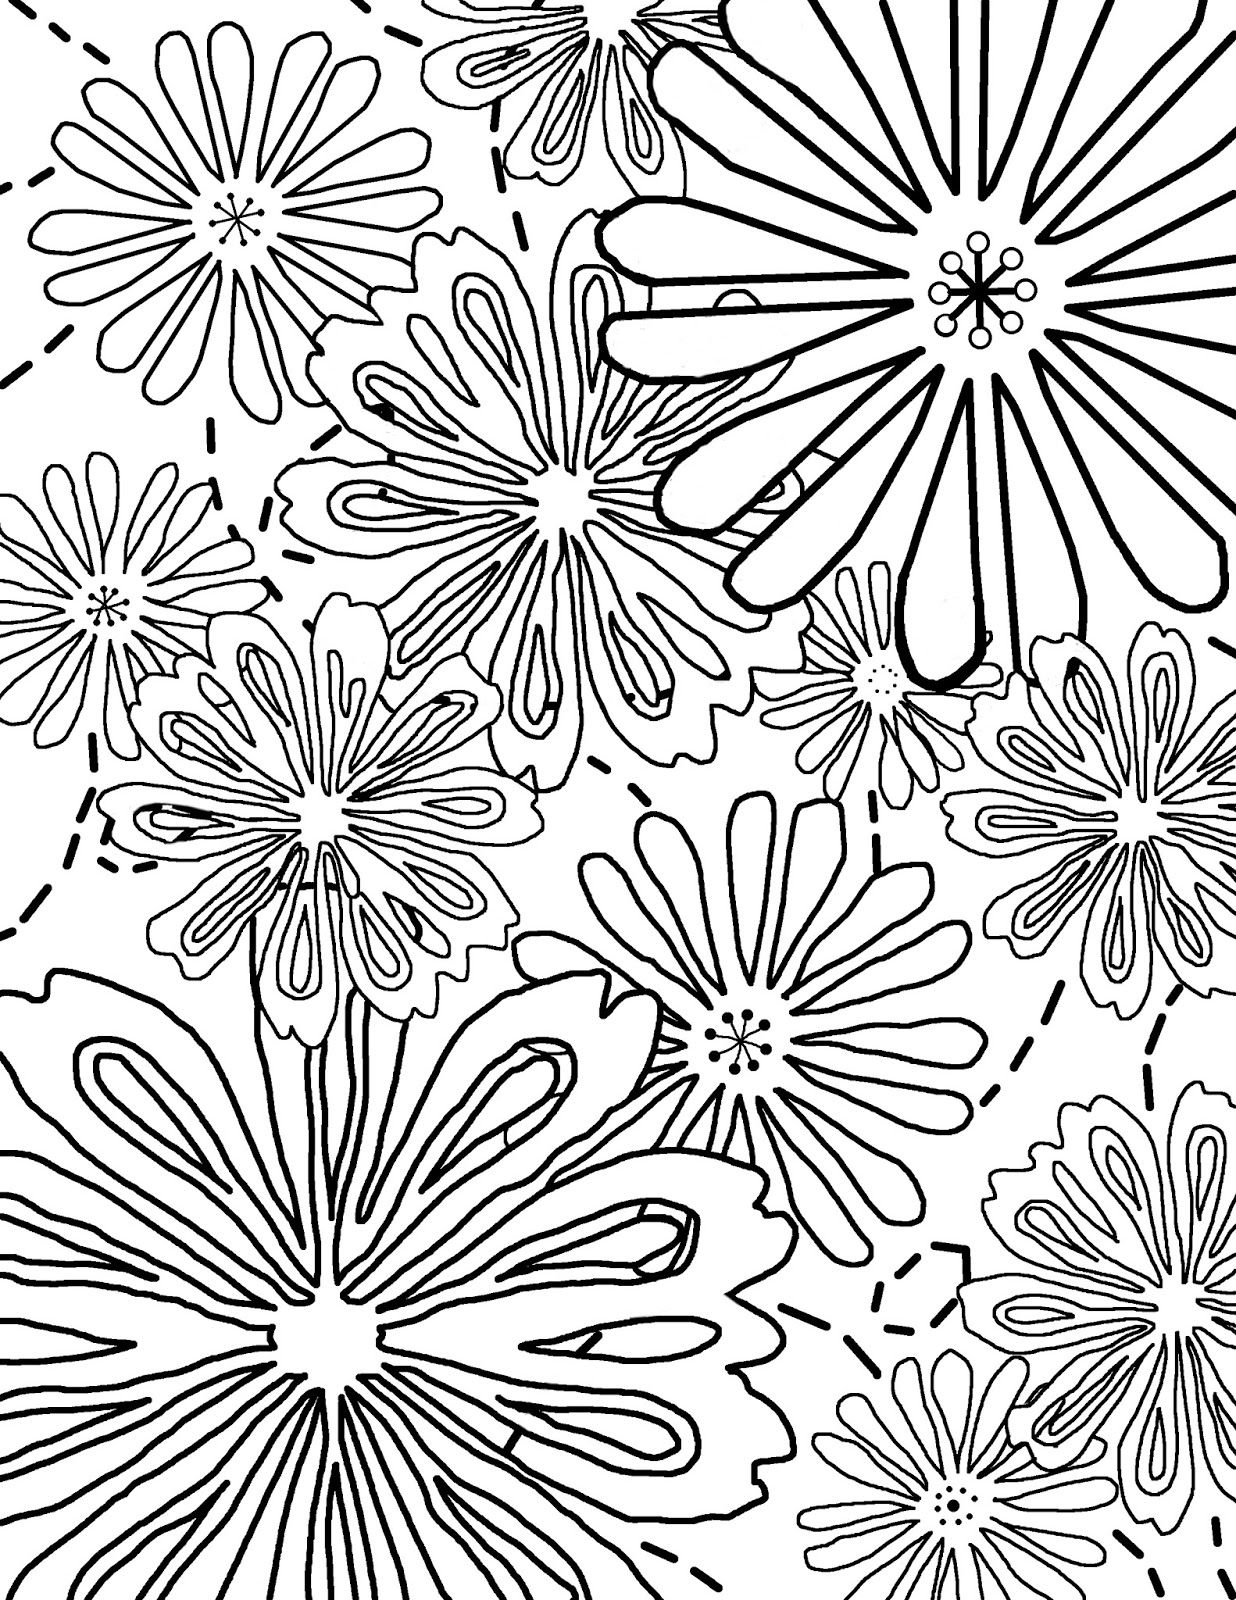 Free printable coloring story books - Free Coloring Pages For Children And Adults Free Coloring Story Books Dragons Fantasy Animals People And More